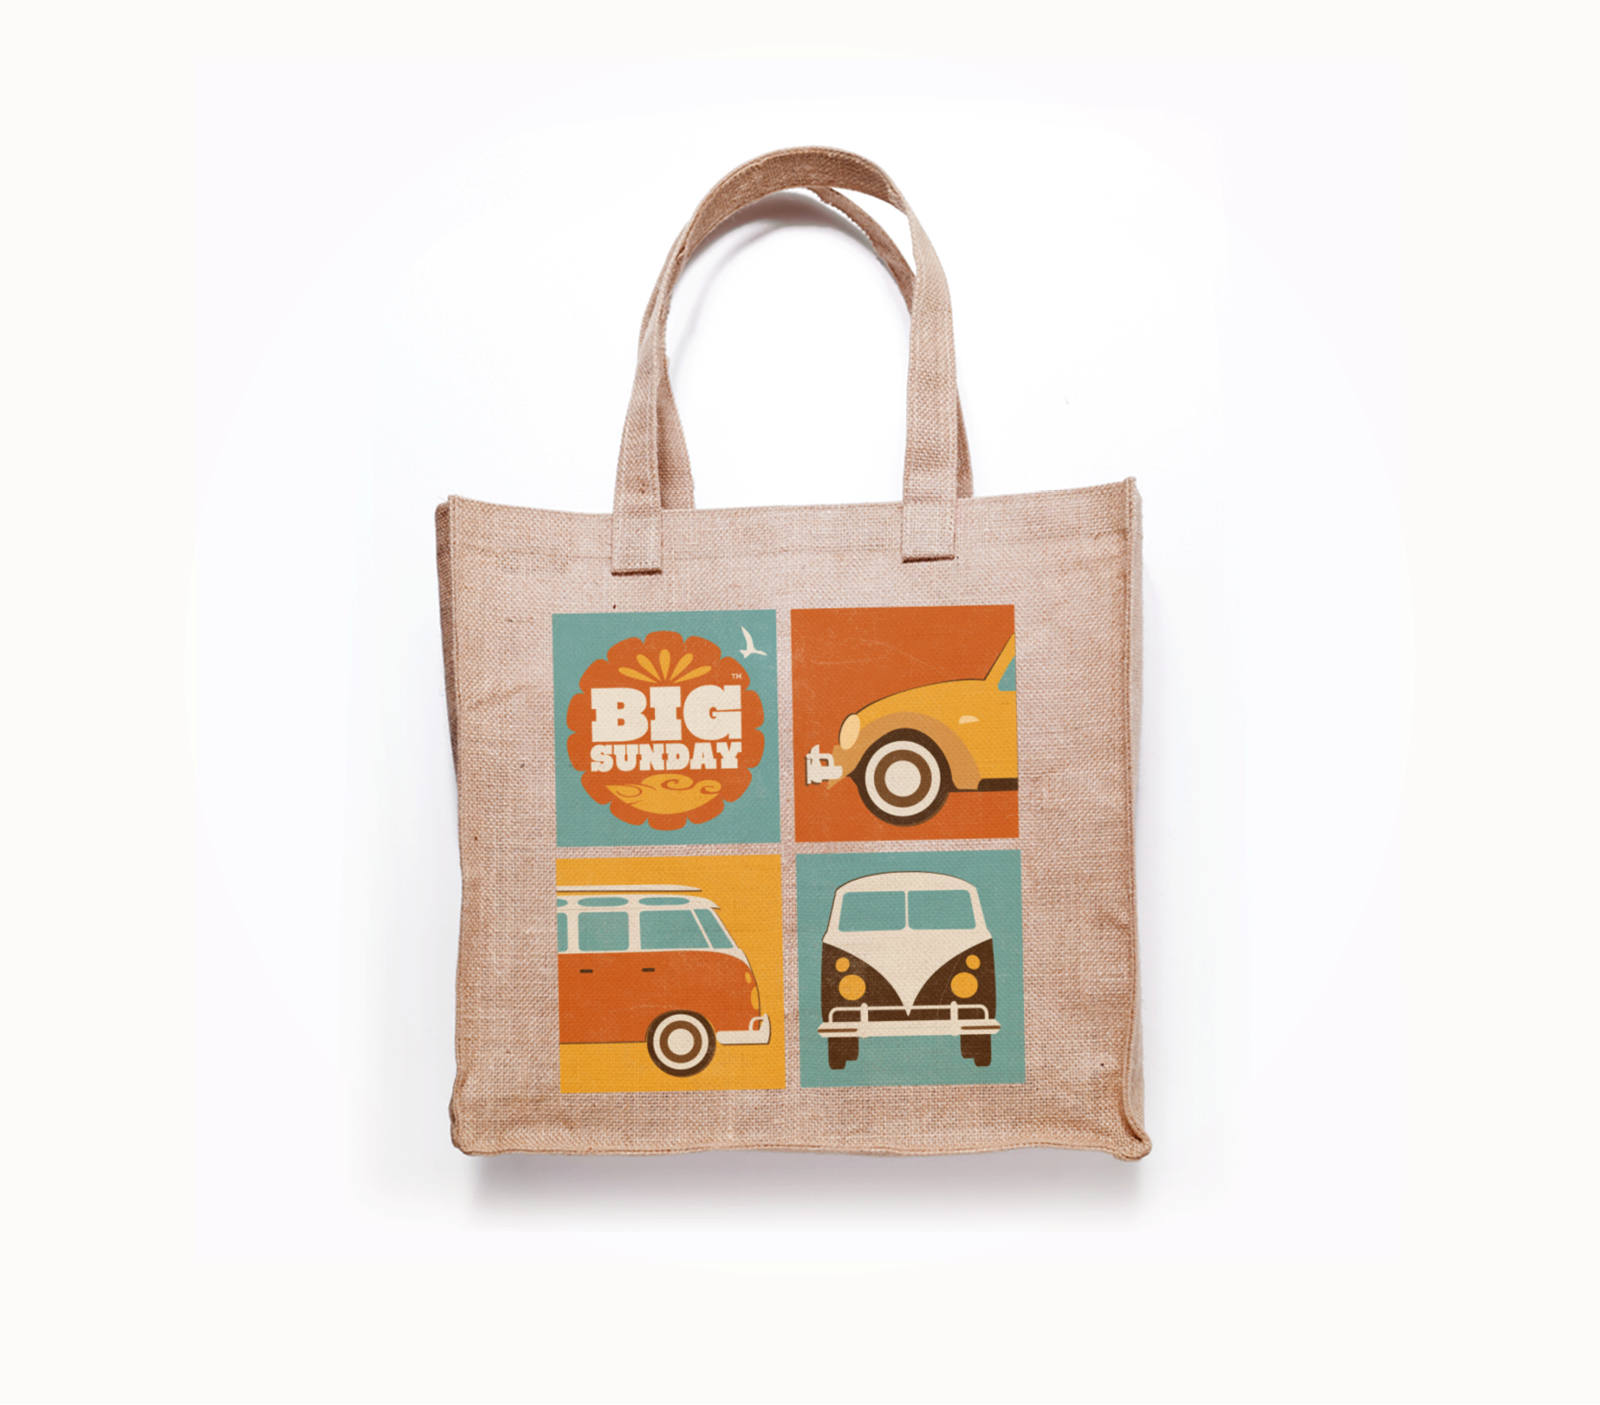 tote bag and promotional material for charity festival